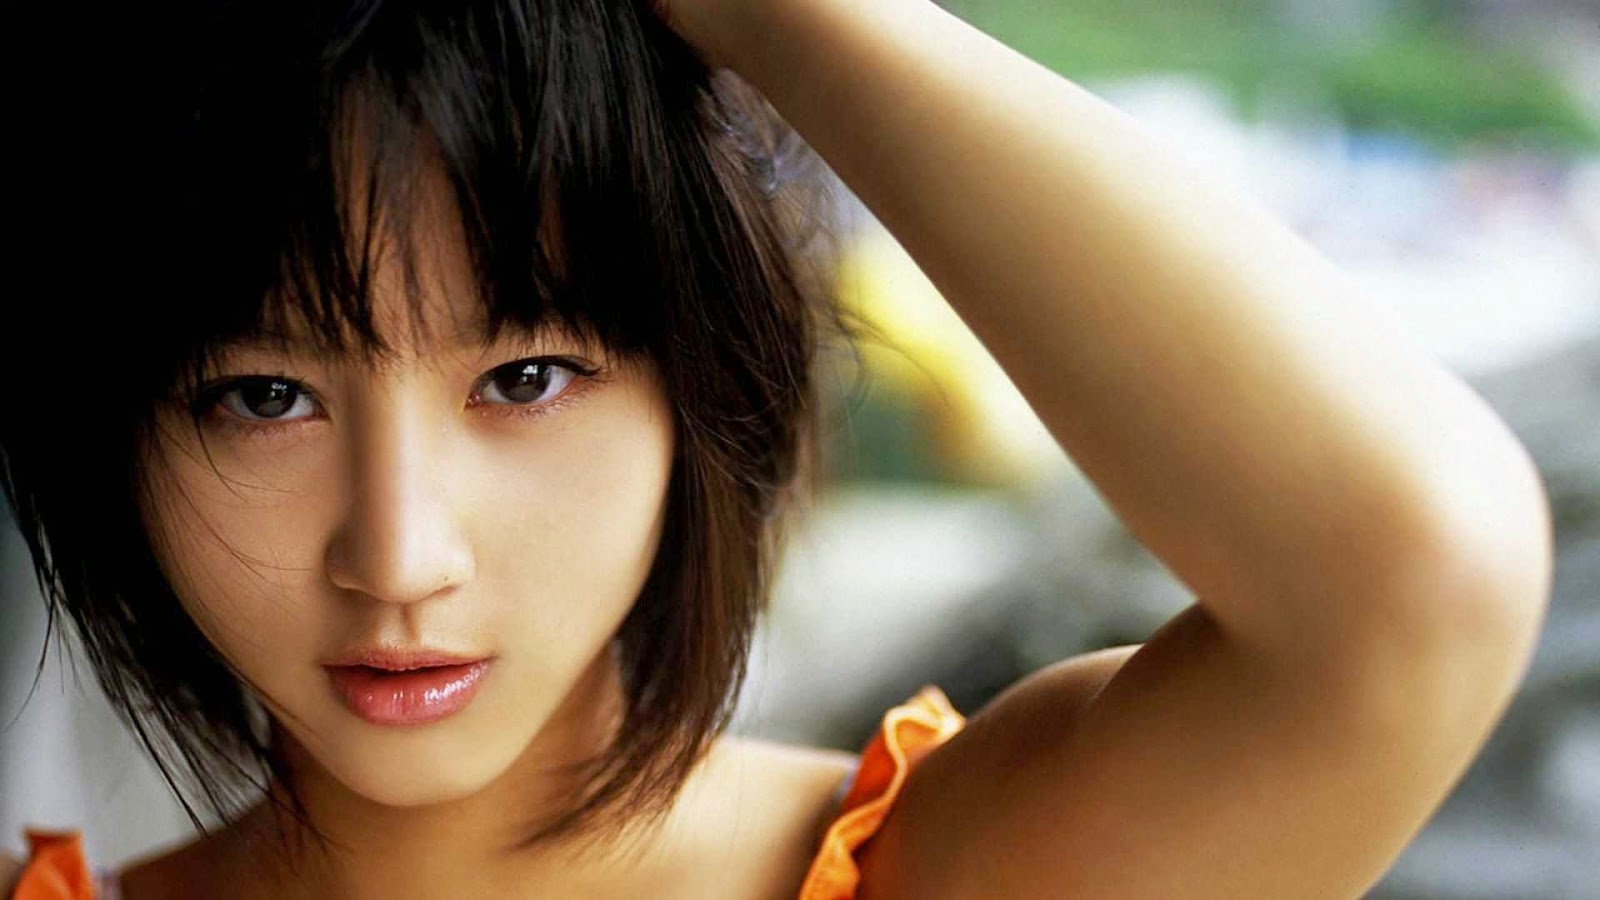 Beautiful & Cute Japanese Girls Wallpapers